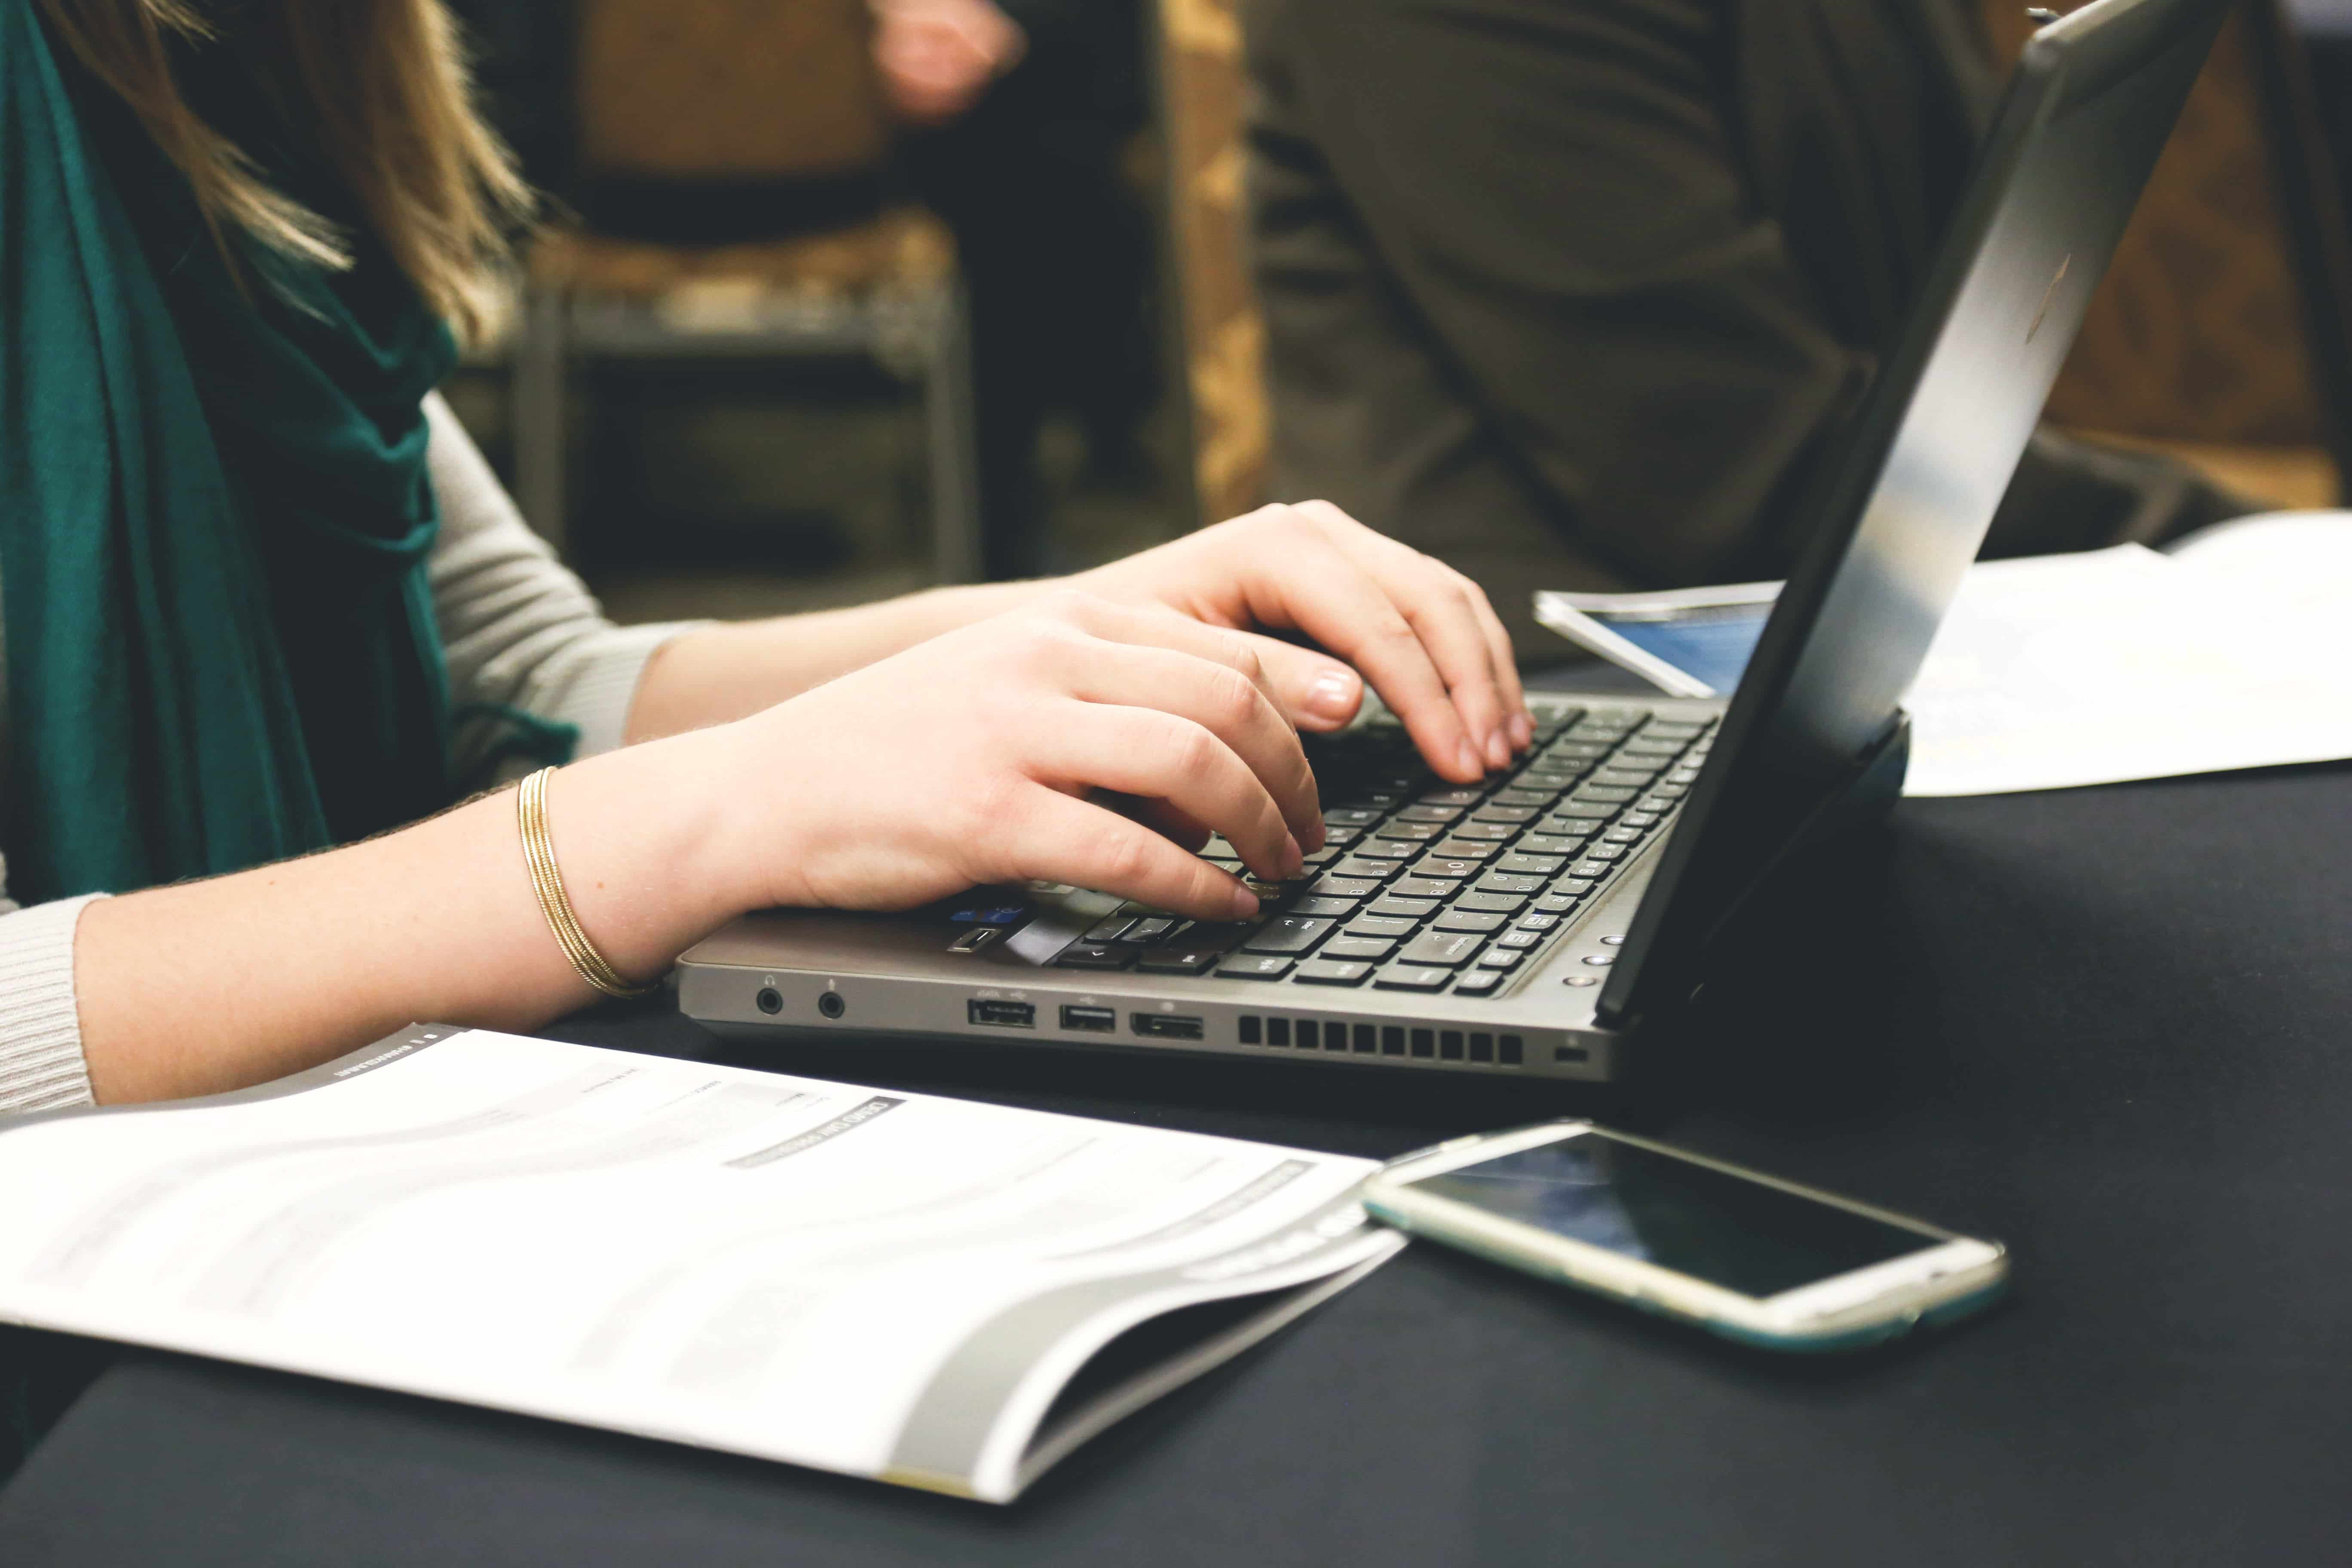 benefits of blogging and how blogging improves your writing skills